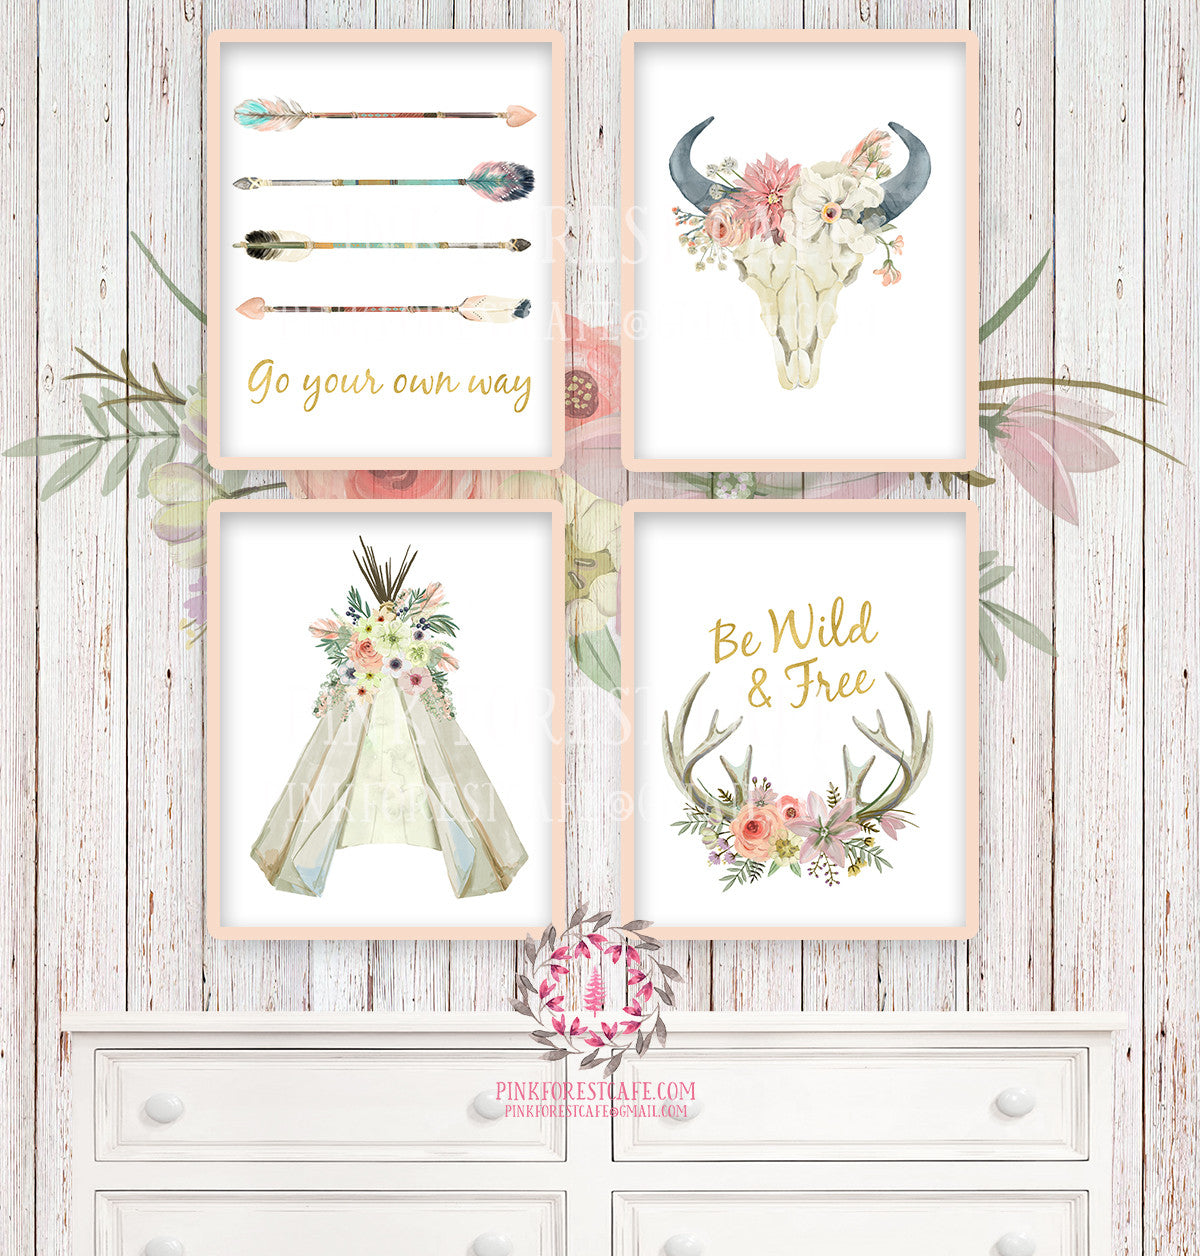 Boho Nursery Print Wall Art Set of 4 Go Your Own Way Teepee Wild Free Arrow Watercolor Gold Floral Baby Girl Room Prints Printable Bohemian Decor